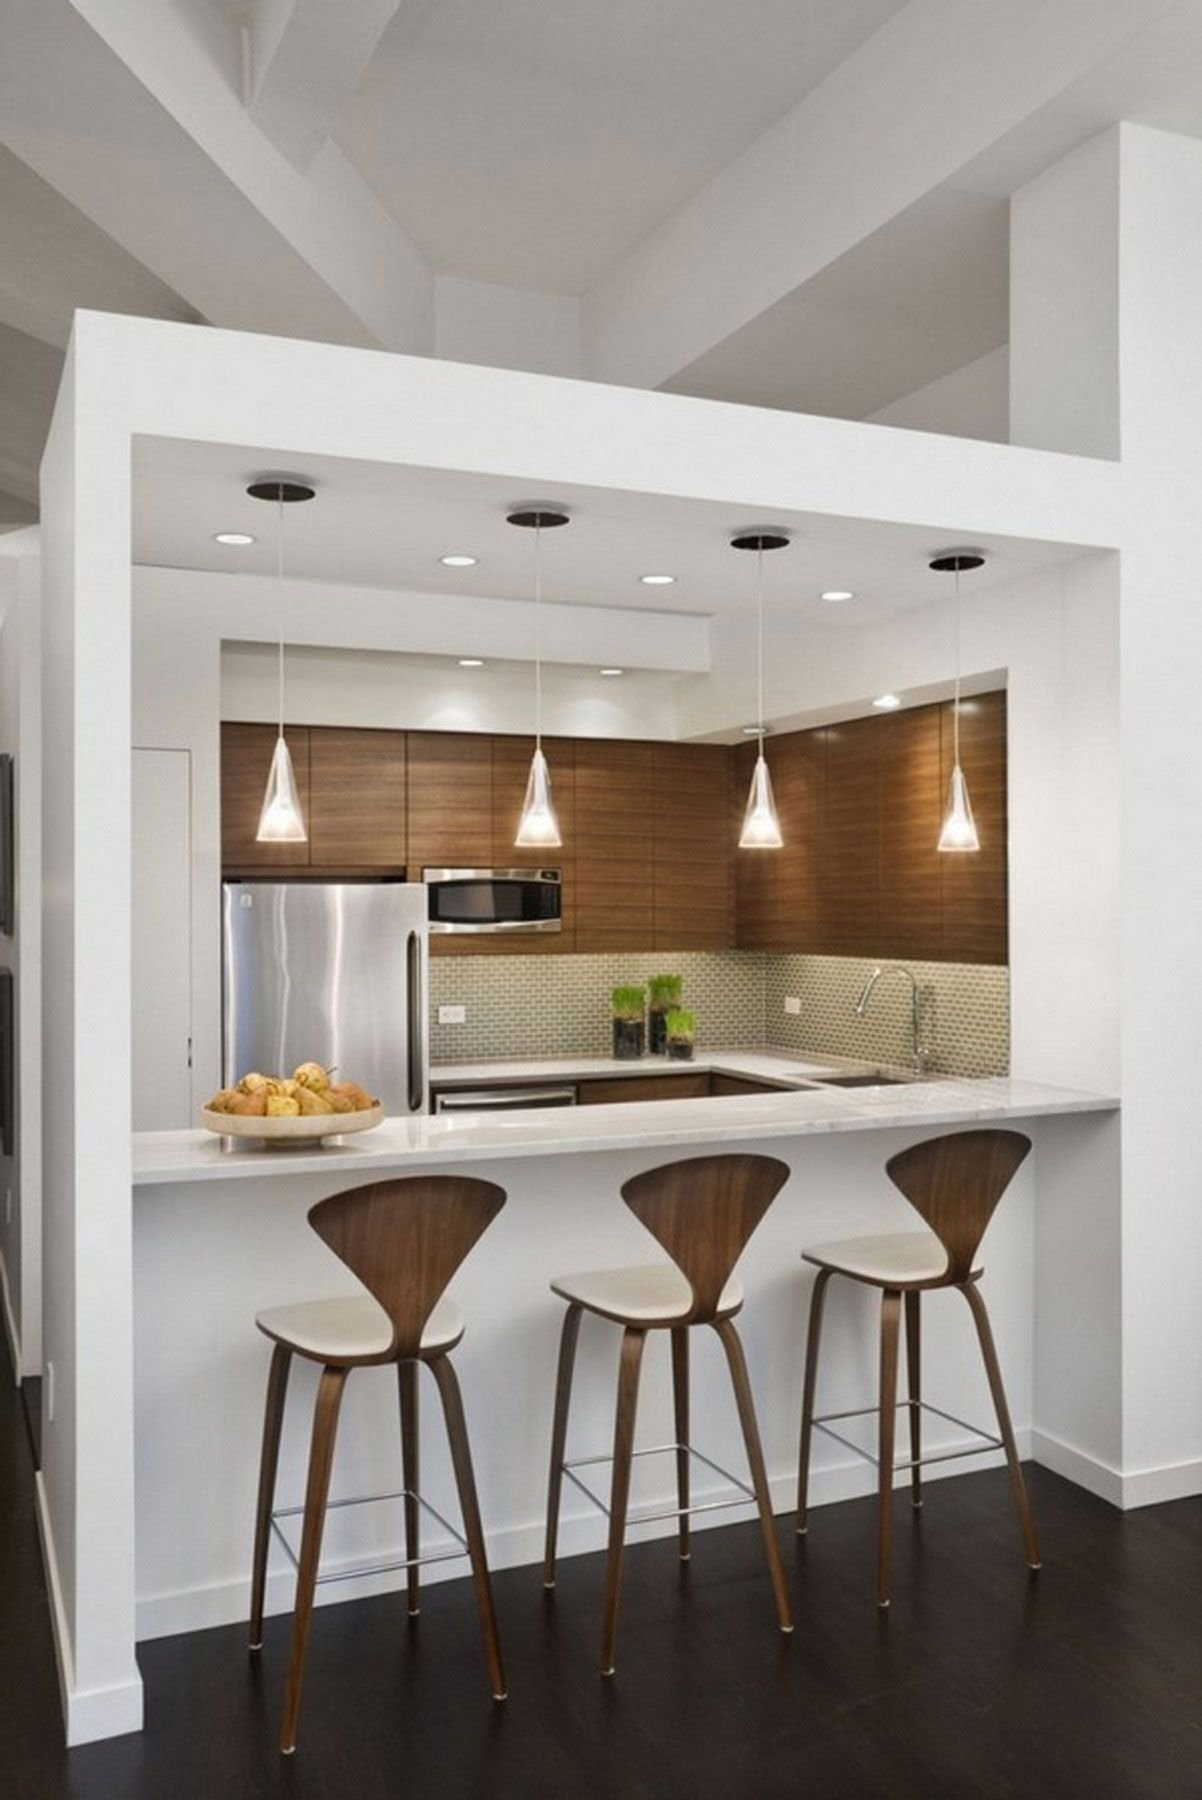 10 Ideal Kitchen Design Ideas For Small Kitchens small kitchen design ideas small space kitchen space kitchen and 1 2020